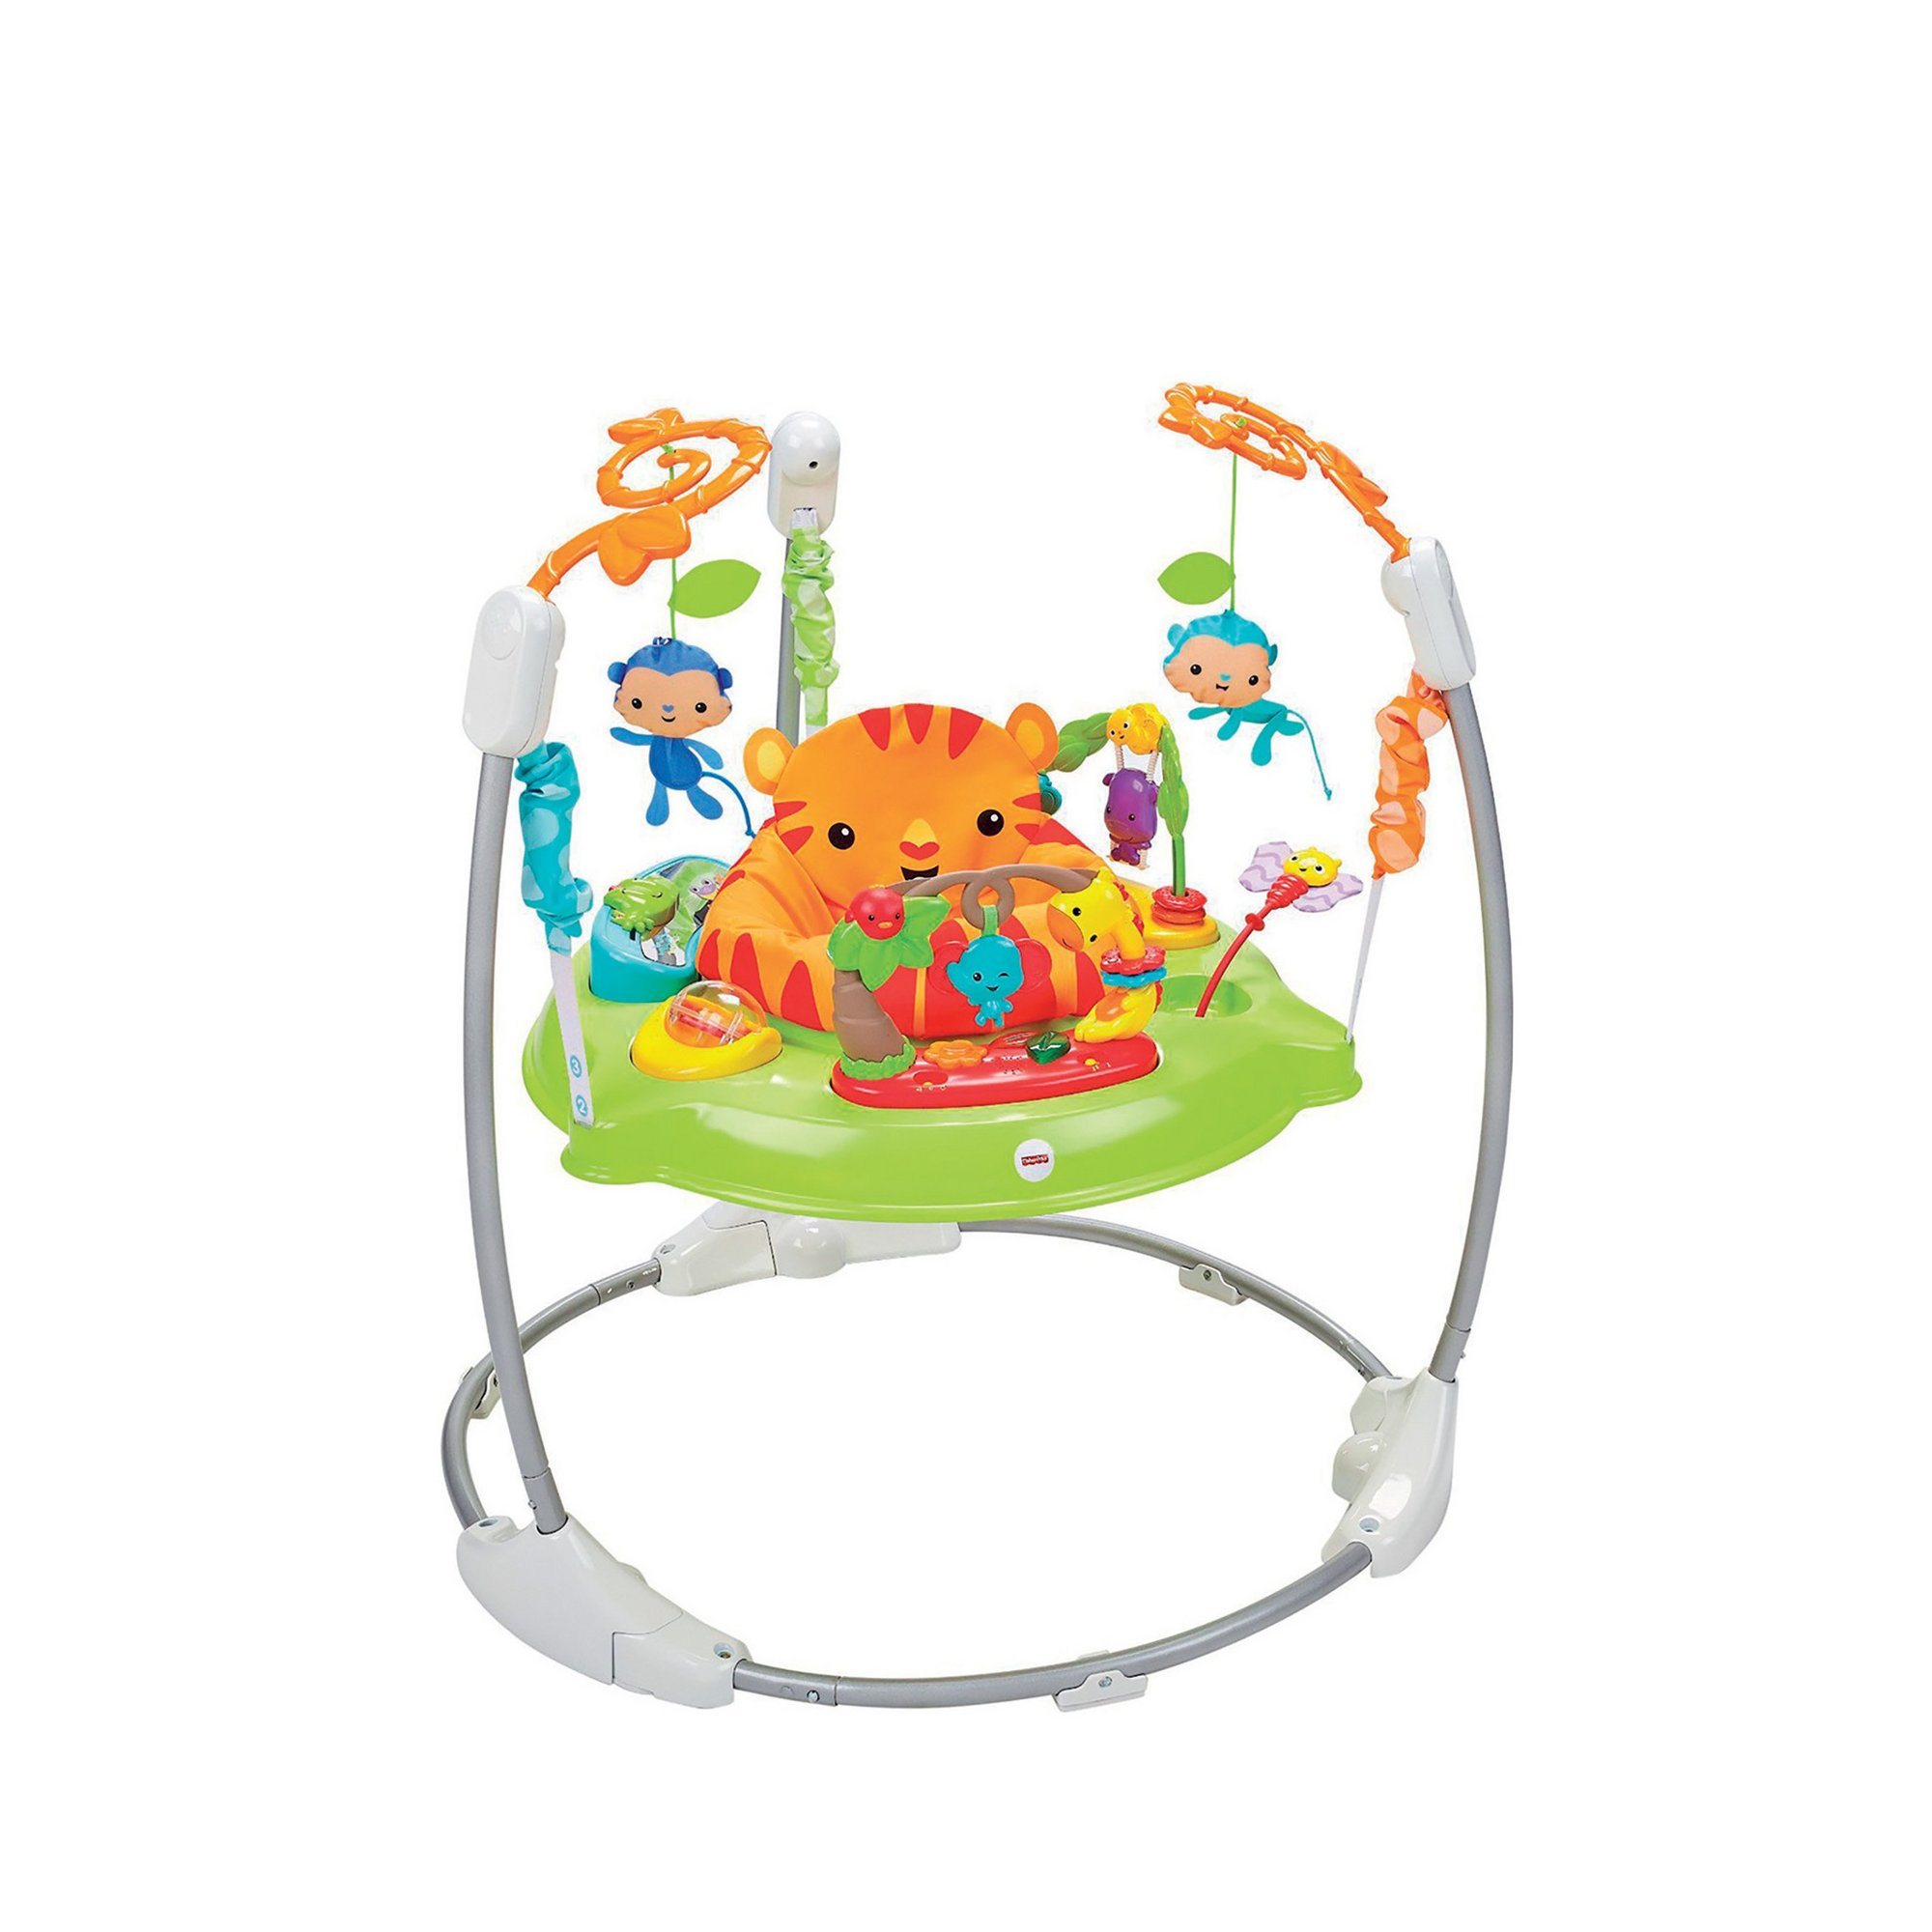 Image of Fisher-Price Rainforest Jumperoo